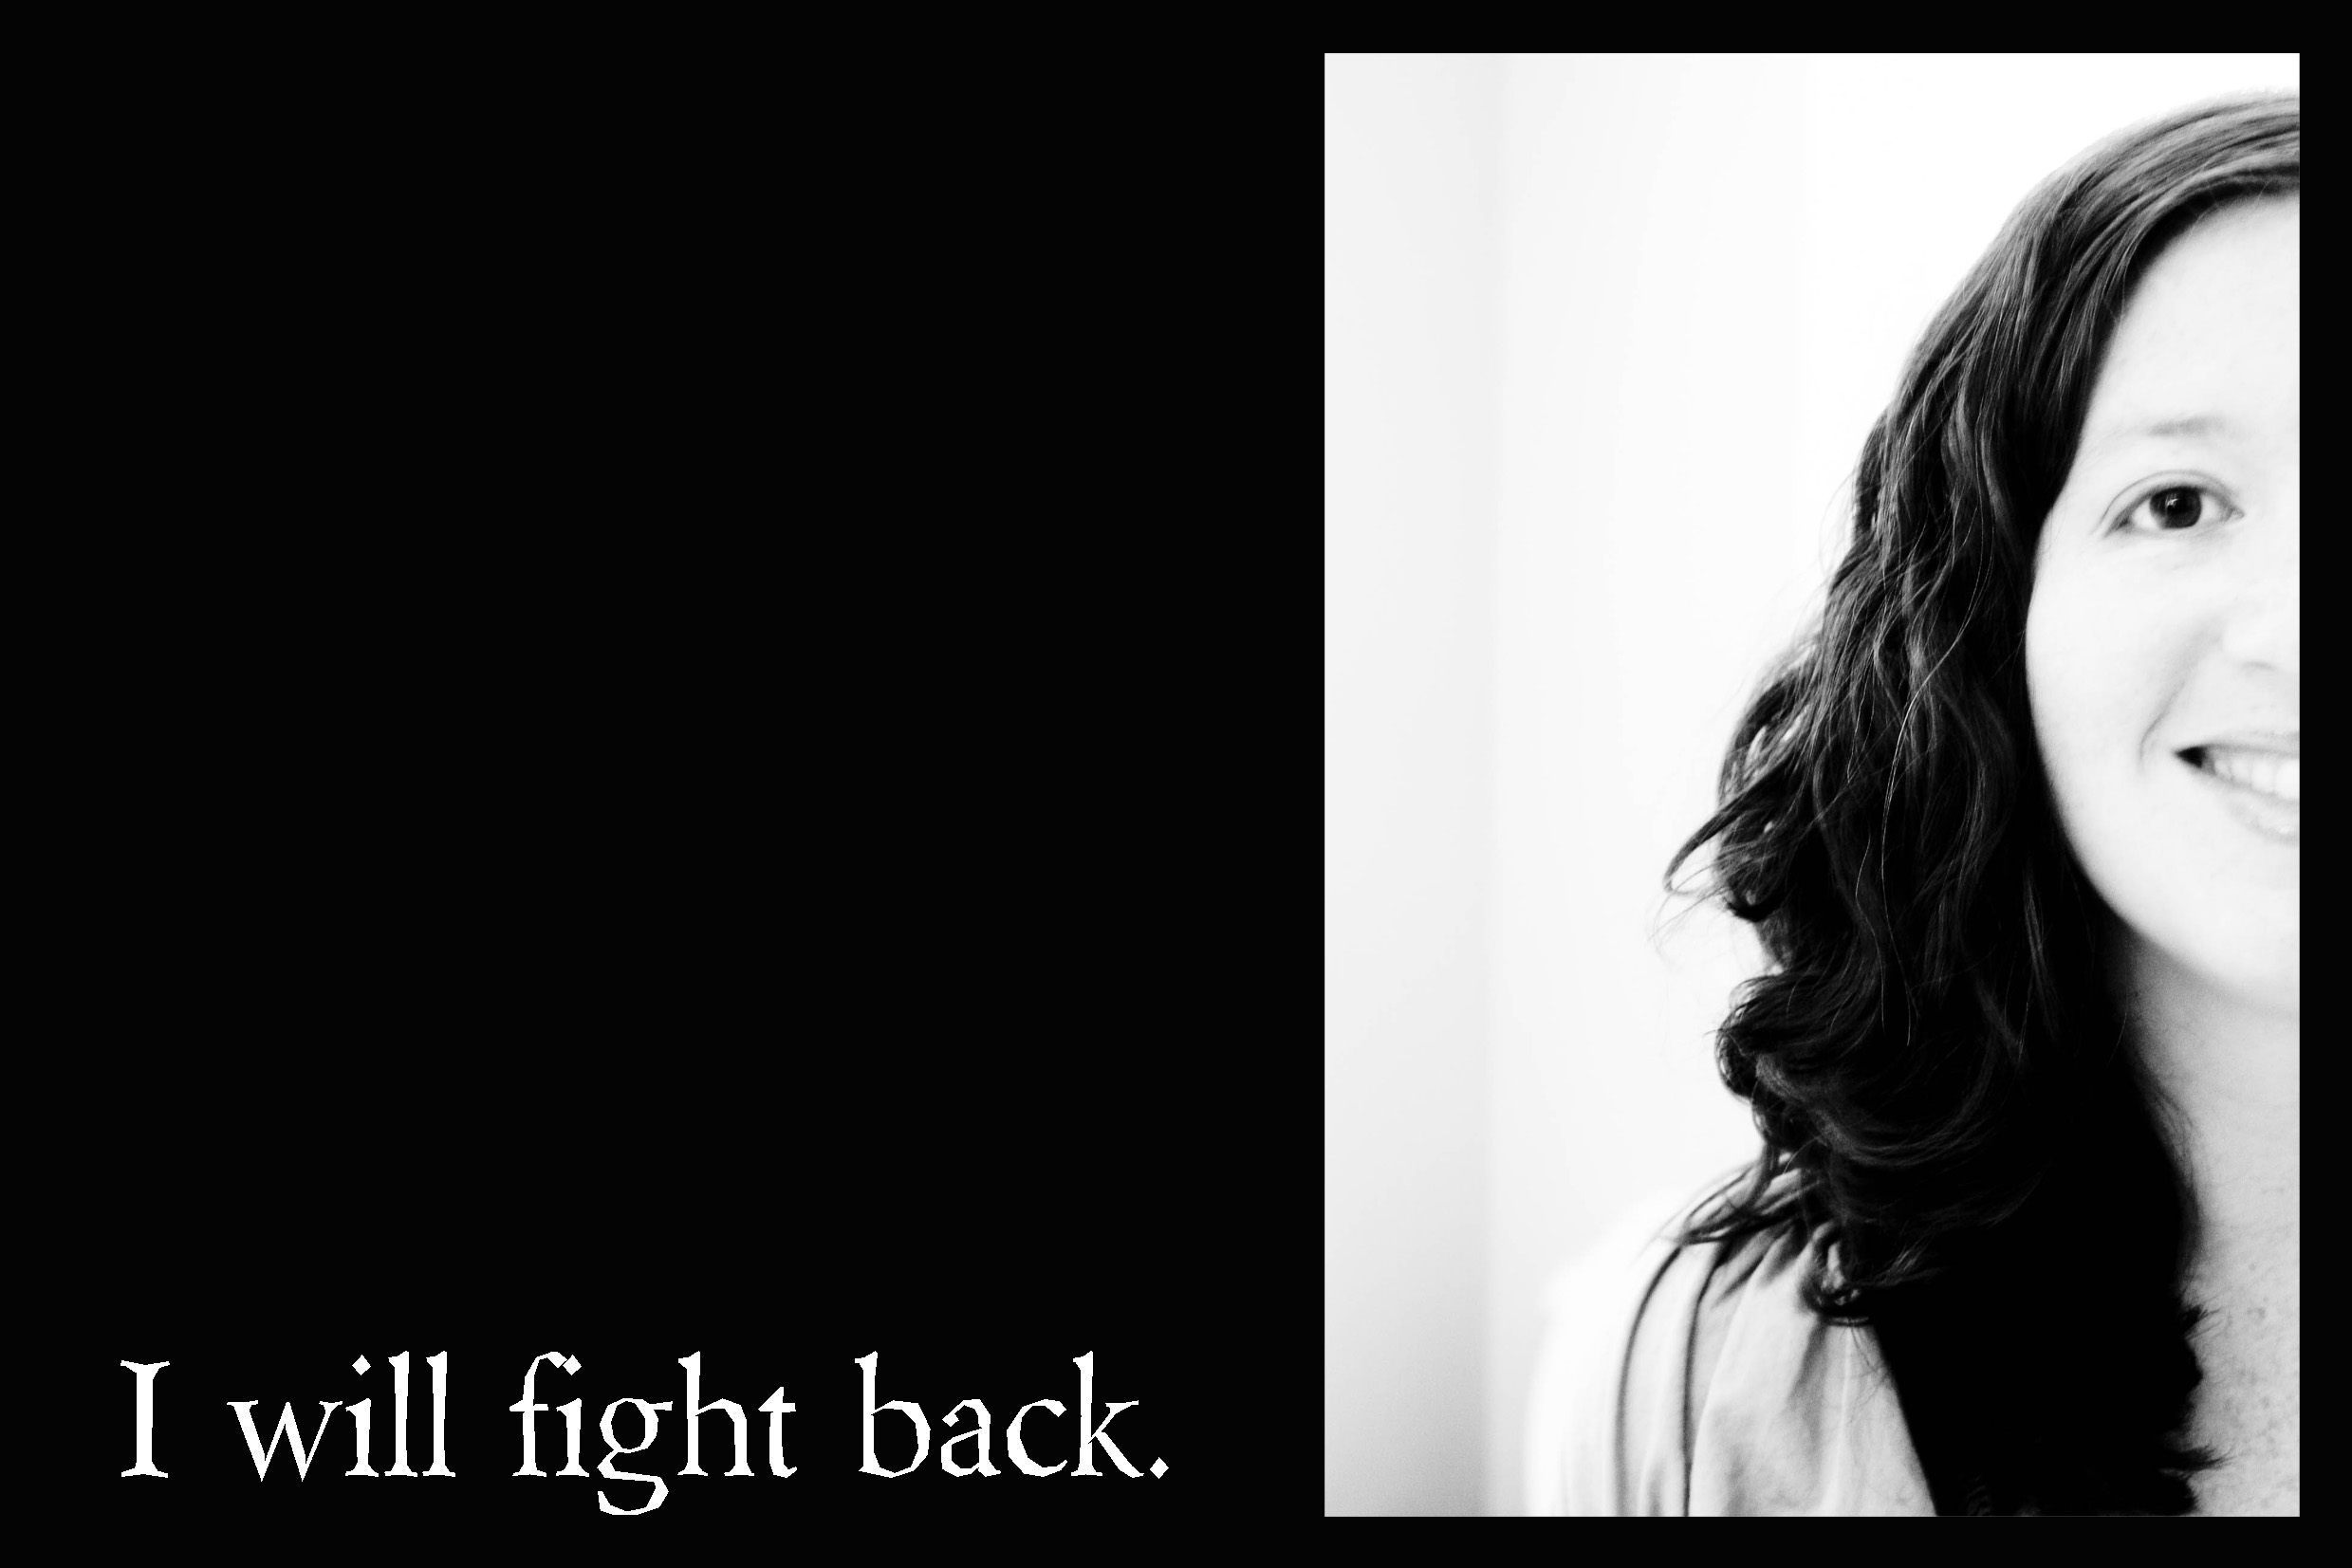 I-will-fight-back